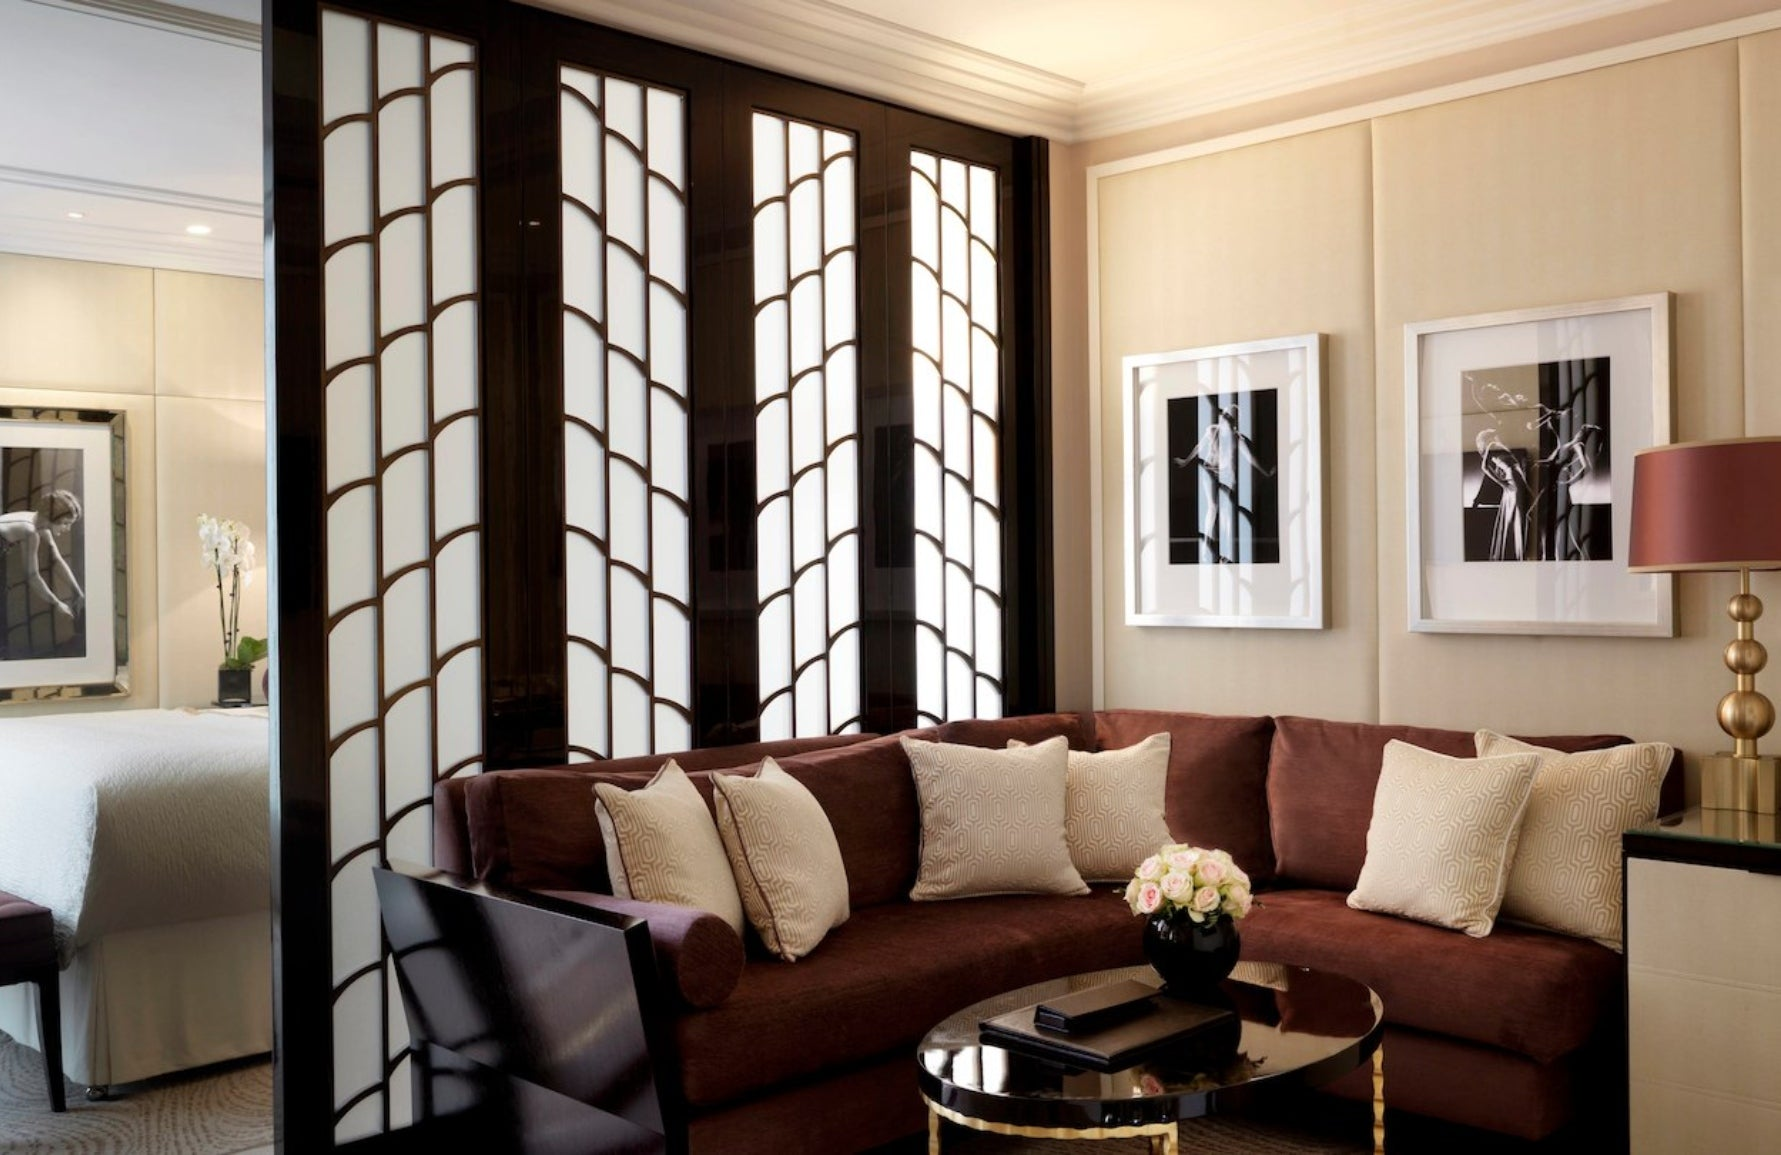 The Wellesley | Art Deco Hotels | Read more in the LuxDeco.com Style Guide